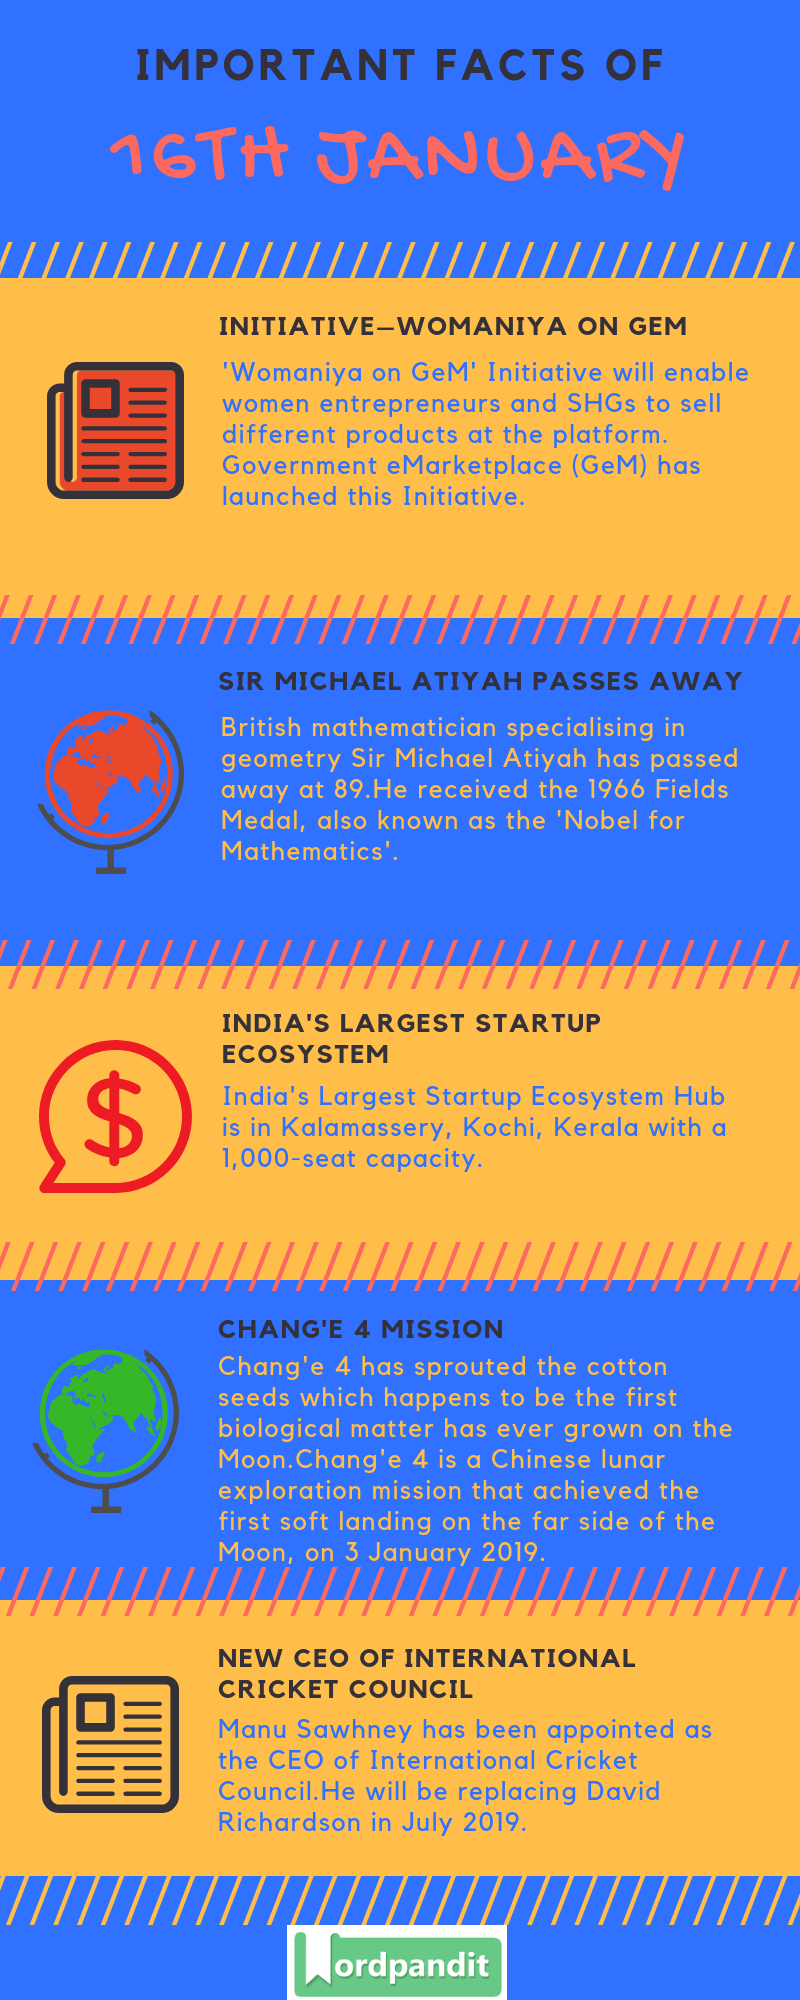 Daily Current Affairs 16 January 2019 Current Affairs Quiz 16 January 2019 Current Affairs Infographic